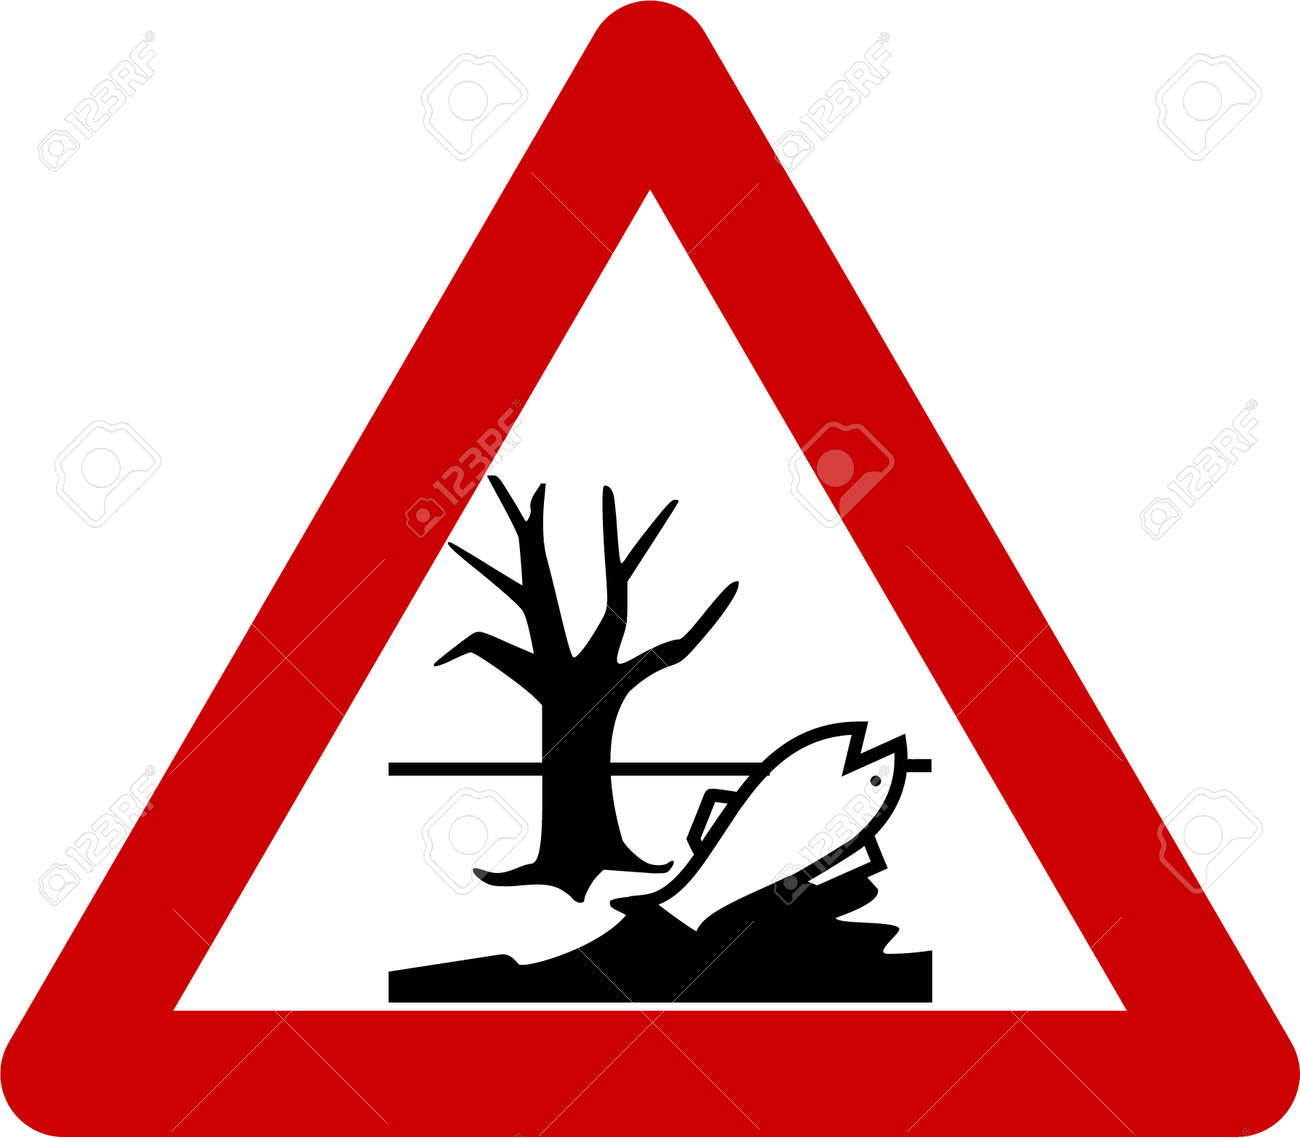 Warning sign with harmful chemicals symbol stock photo picture warning sign with harmful chemicals symbol stock photo 87649438 biocorpaavc Gallery